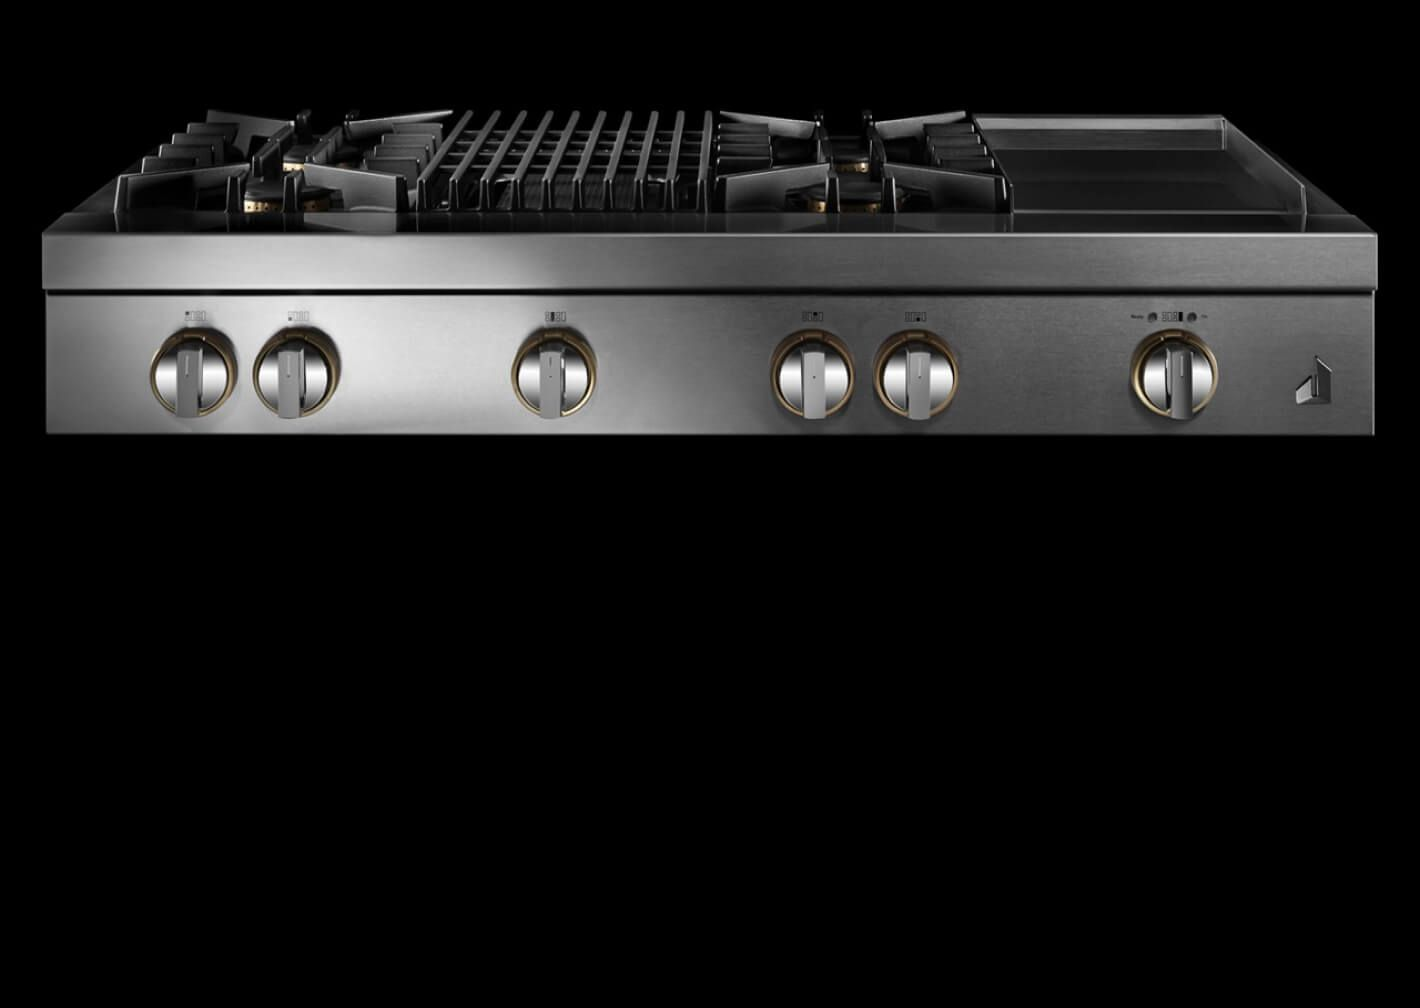 A RISE™ Design gas rangetop with a grill and griddle.